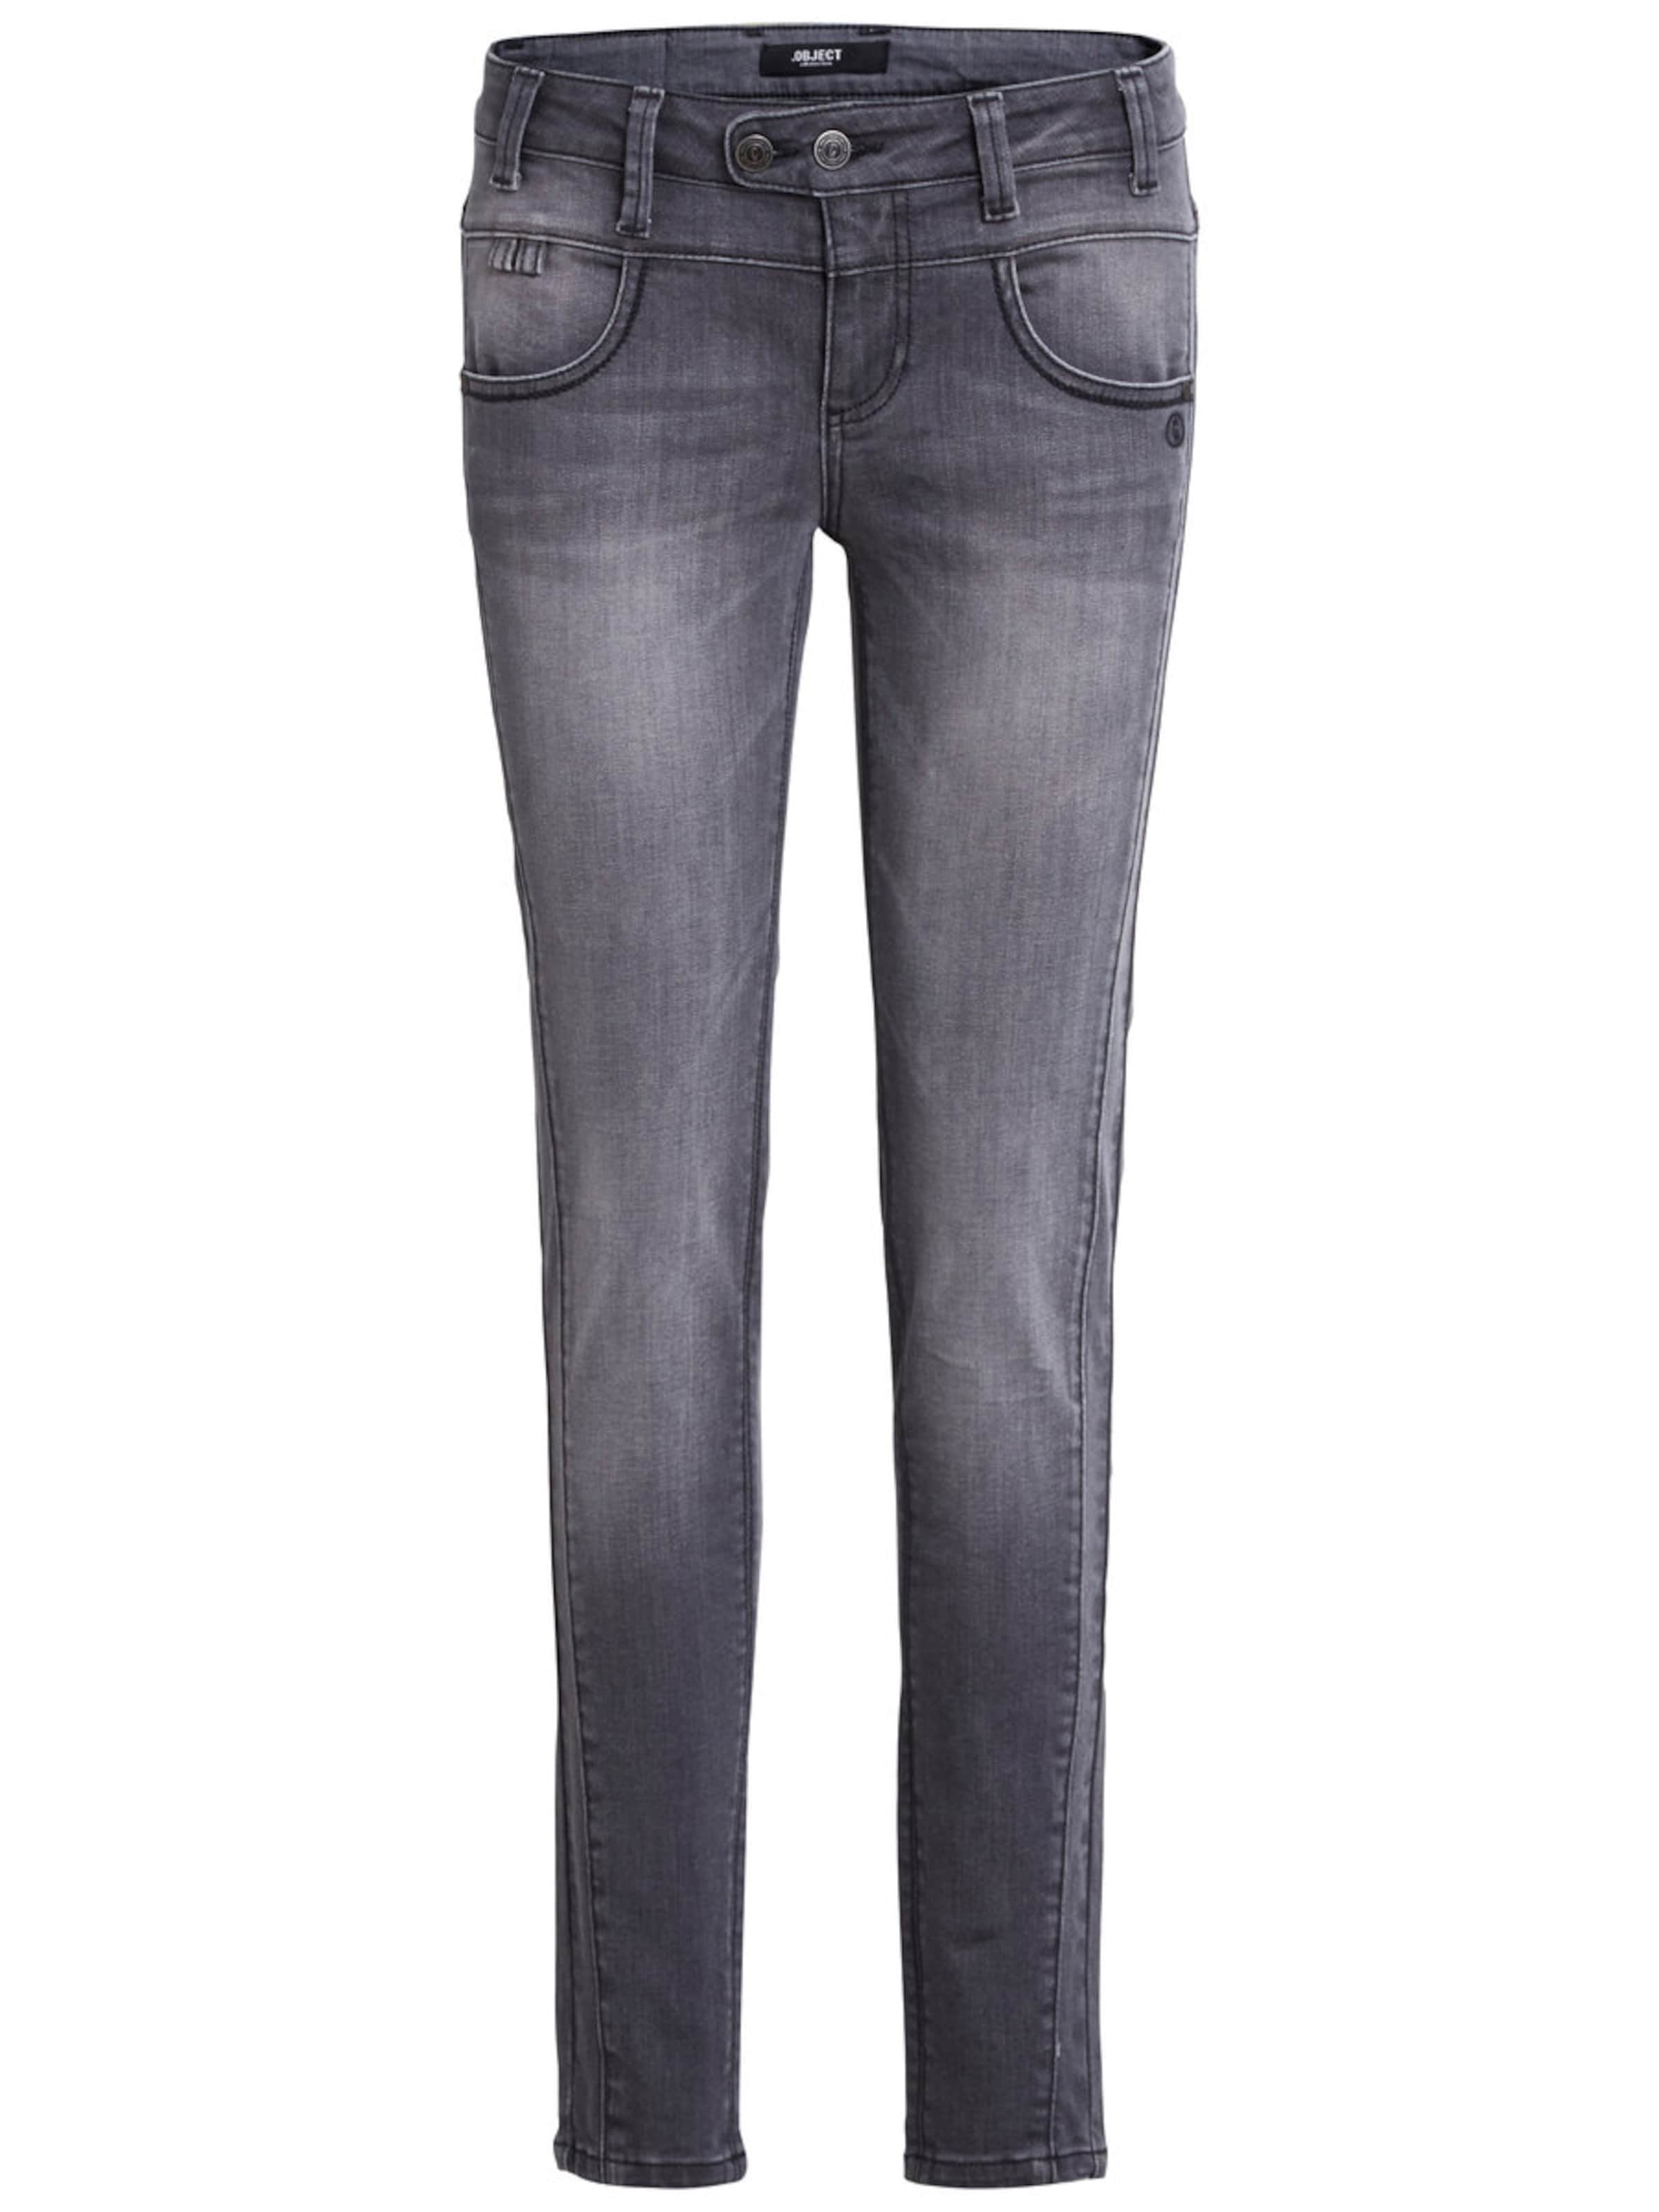 OBJECT Super-Stretch-Slim Fit Jeans 'OBJUP' Kaufen Wirklich Billig Z2CQcO